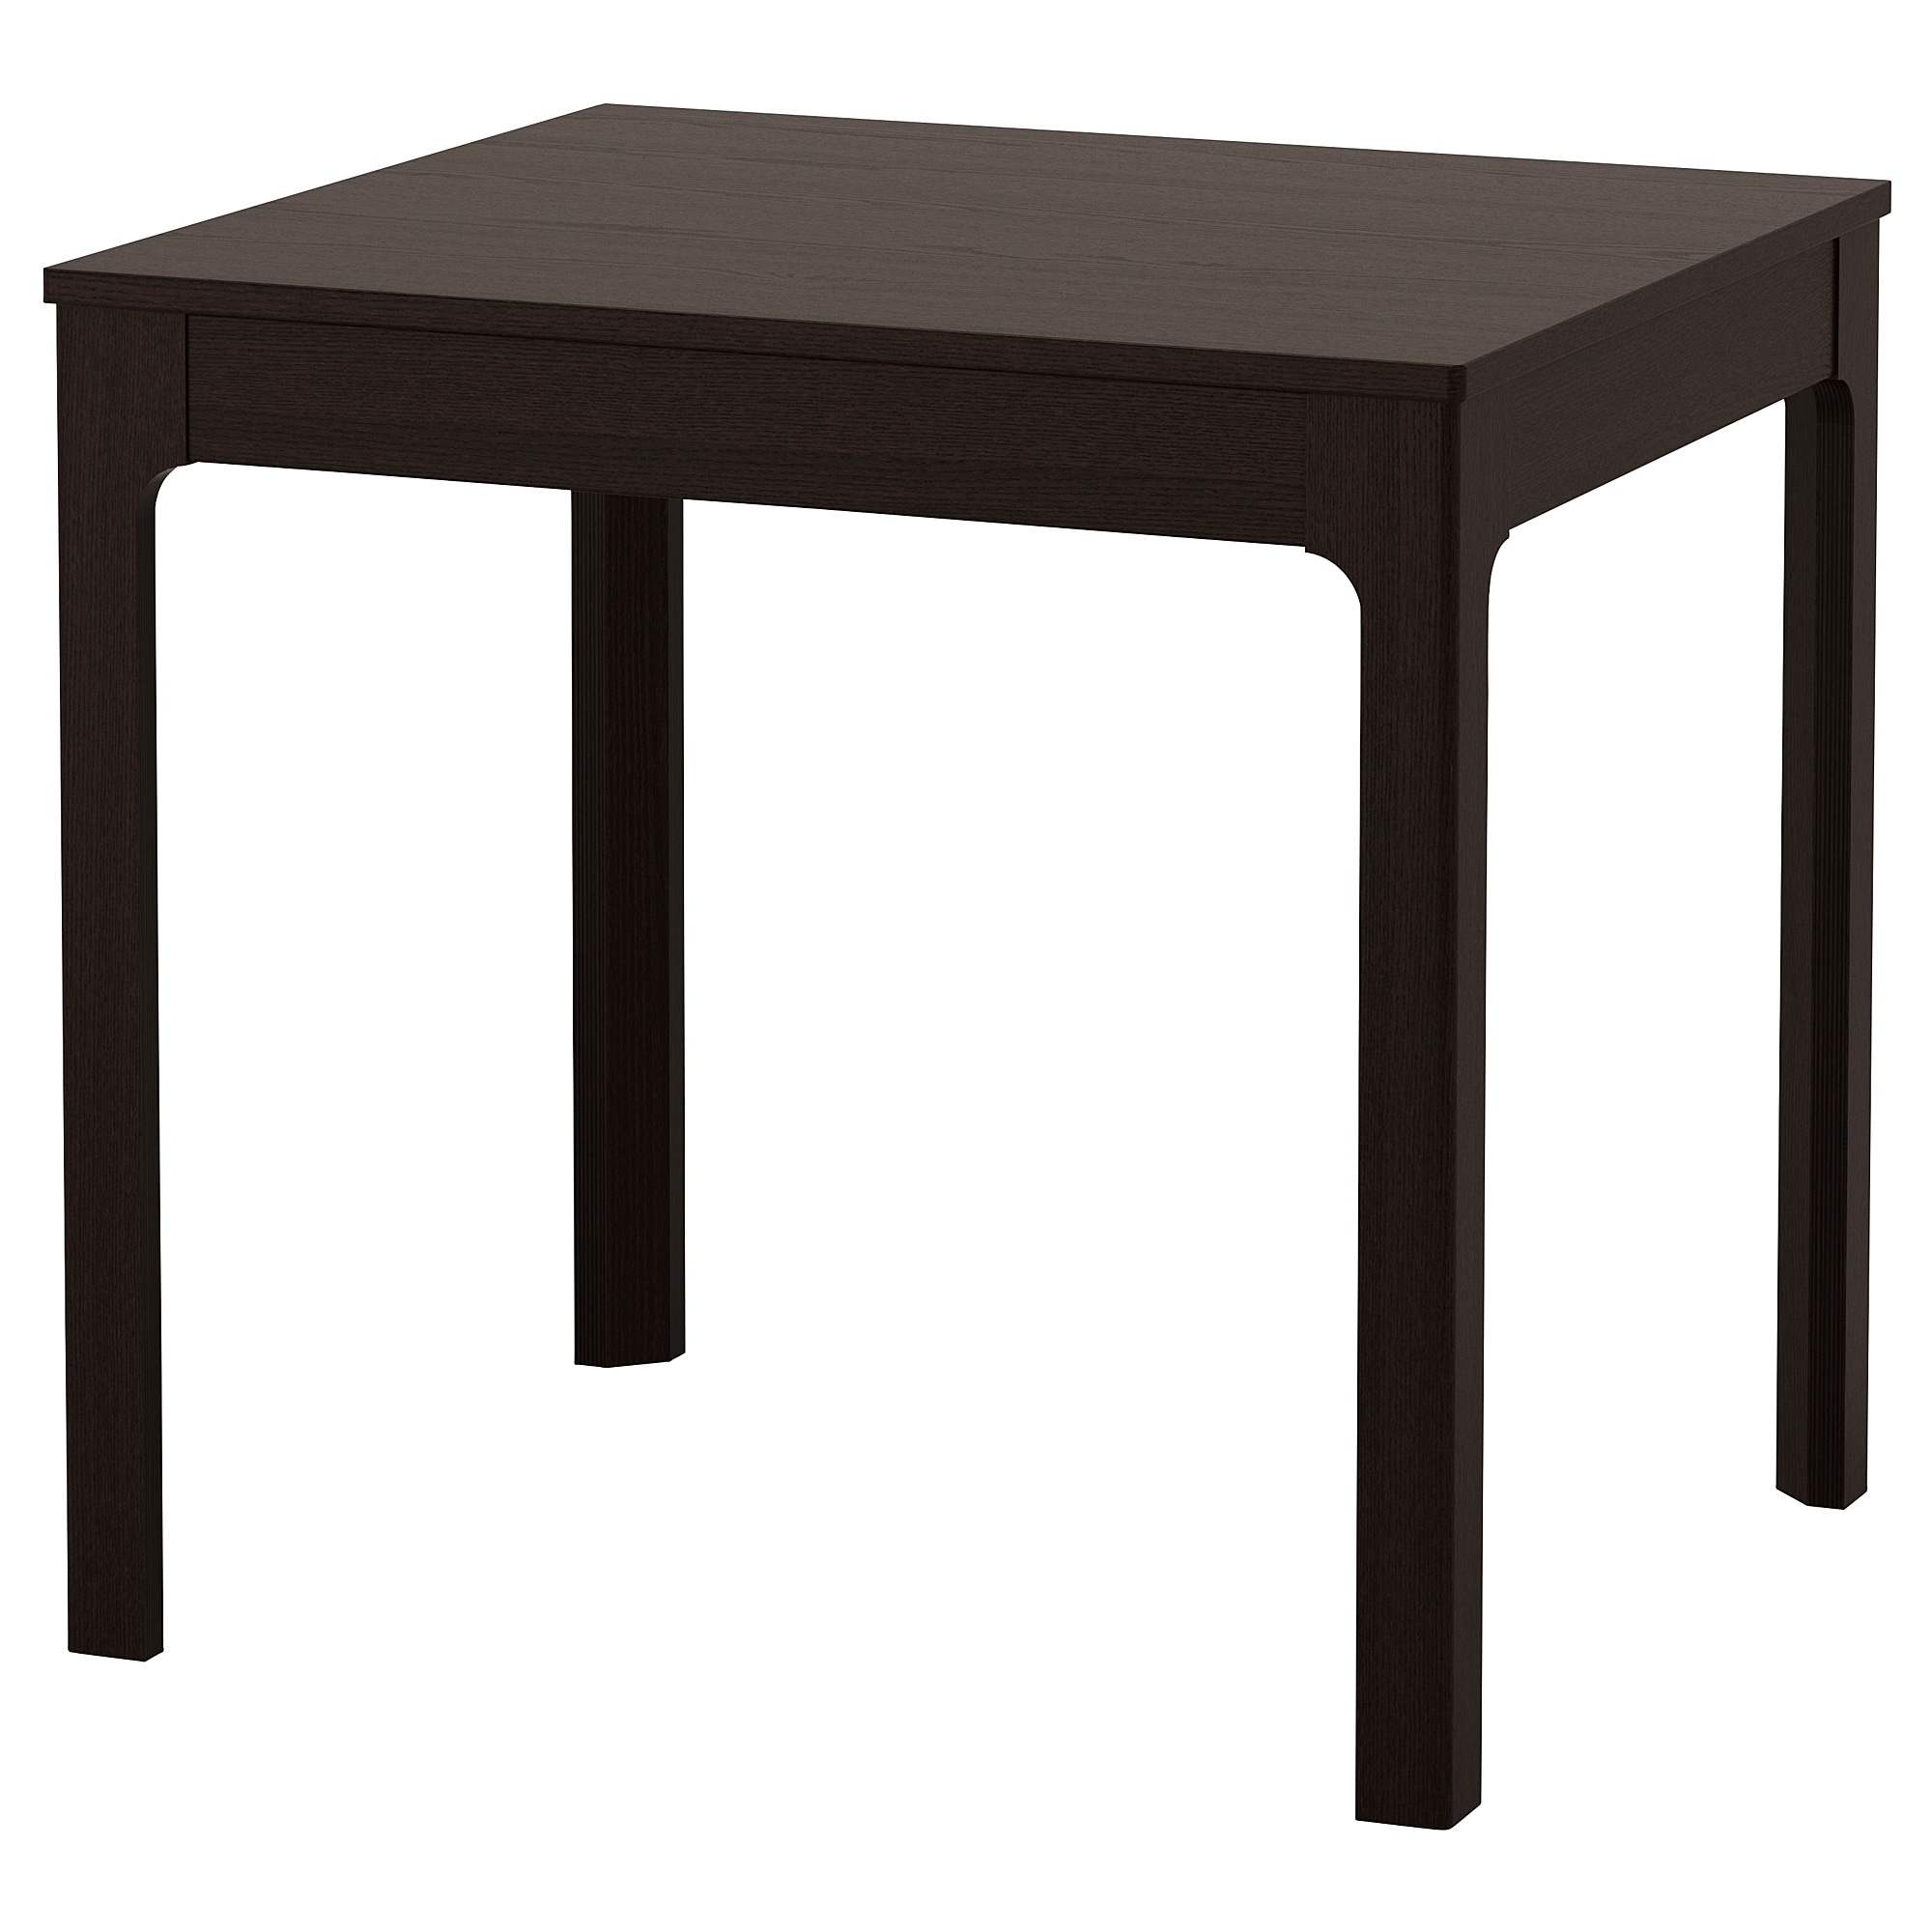 EKEDALEN Extendable Table, Dark Brown